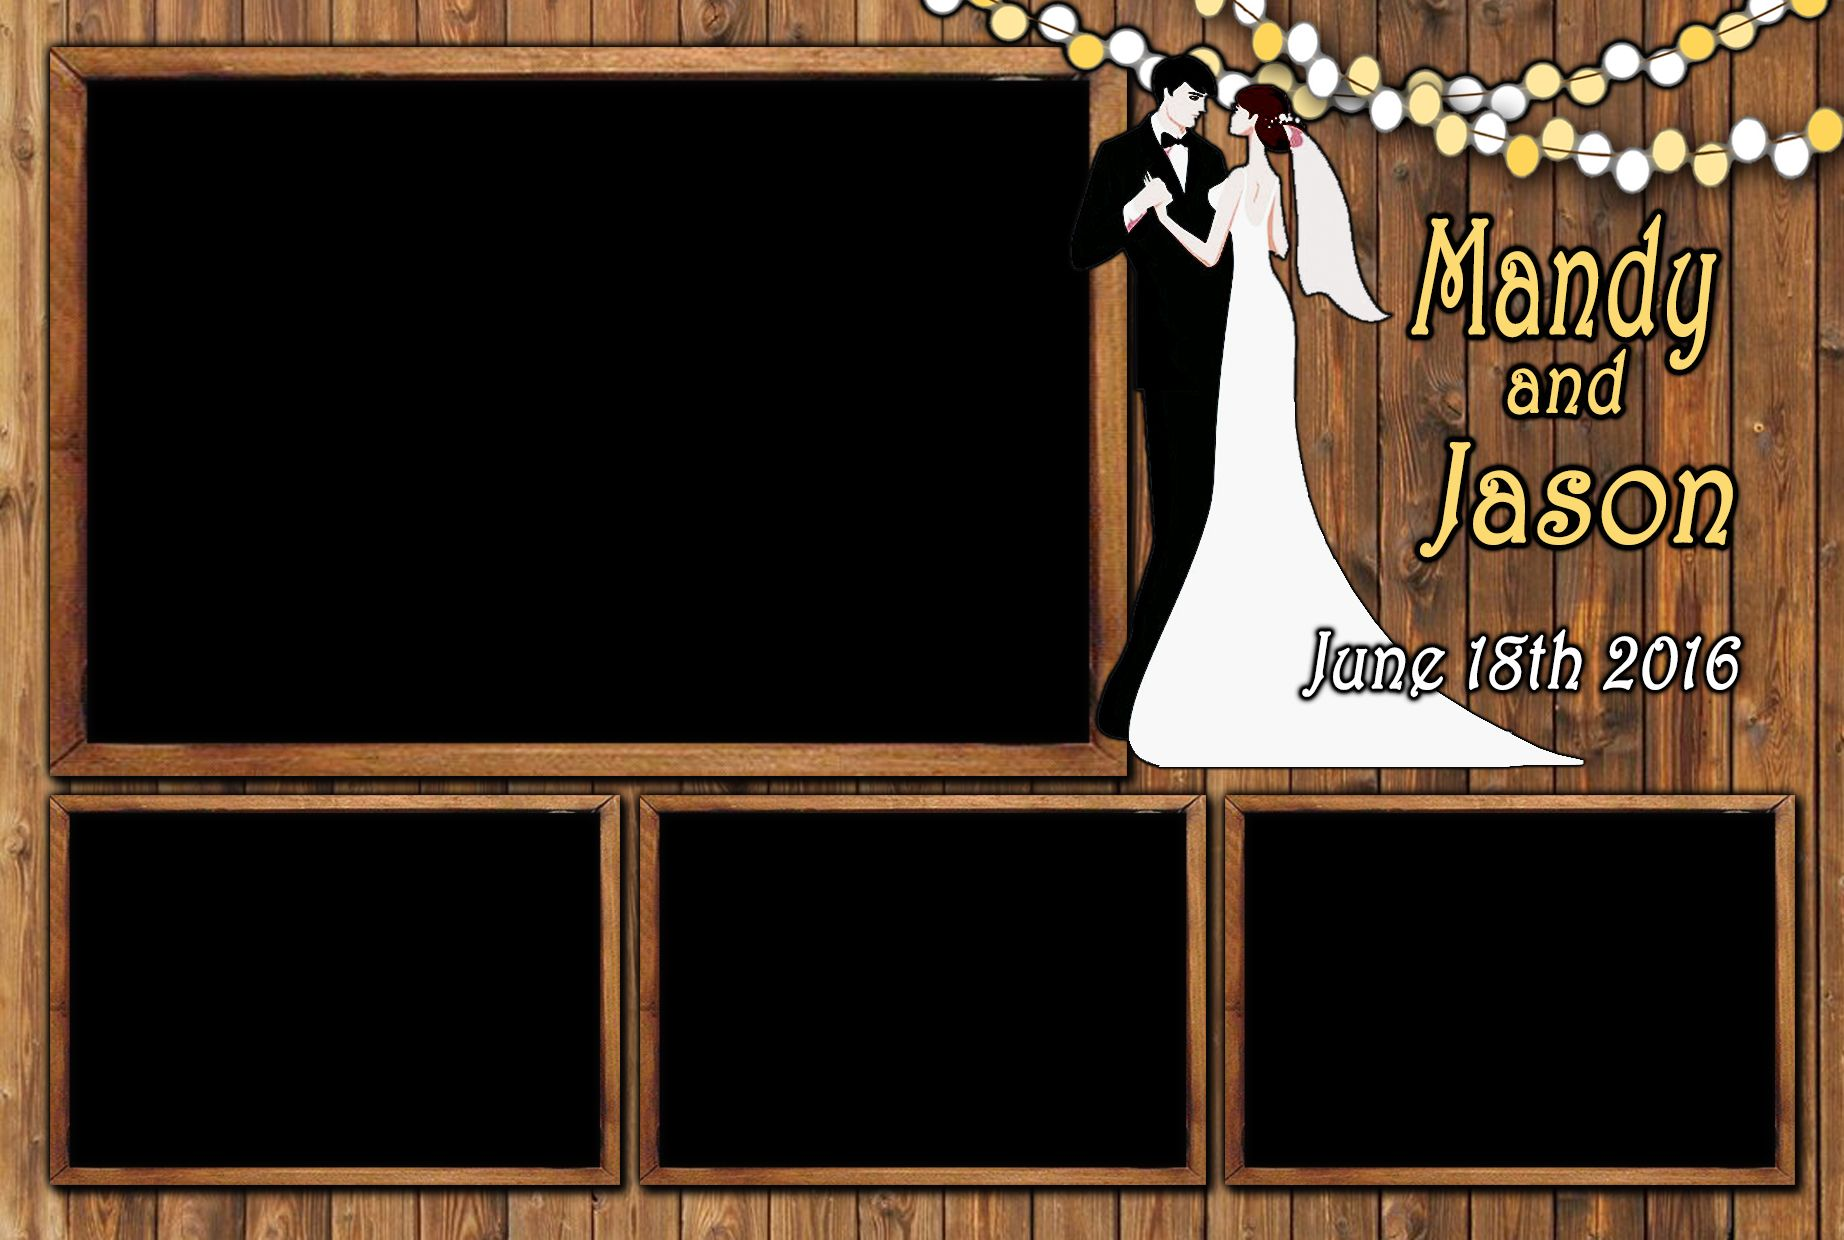 the looking glass rustic wedding photo booth template from our saloon booth free wedding. Black Bedroom Furniture Sets. Home Design Ideas